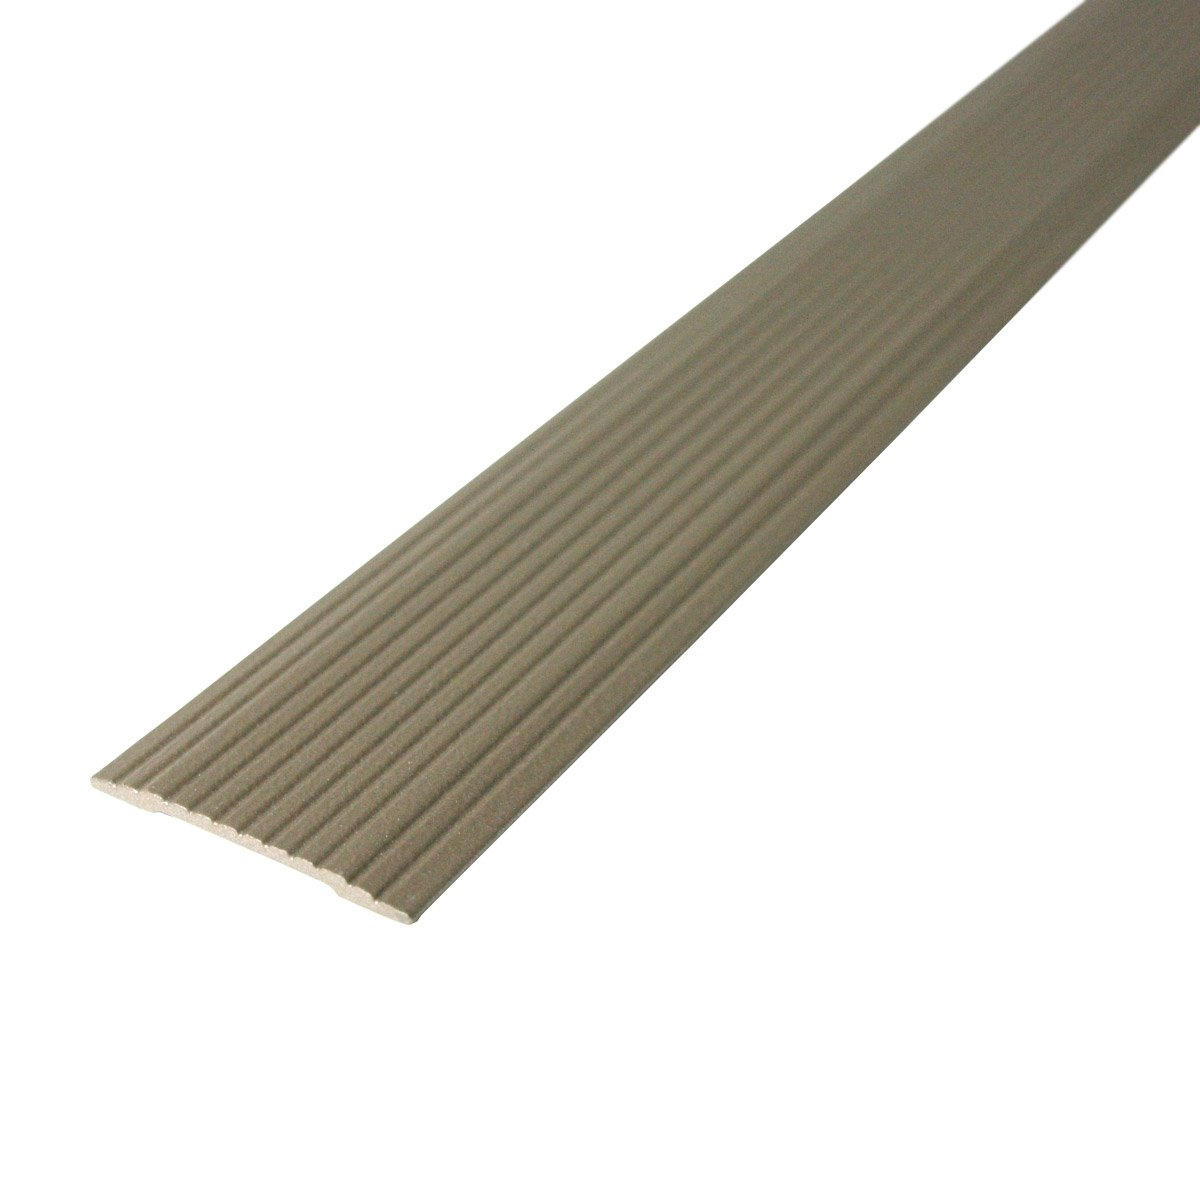 M-D Building Products Cinch Seam Cover (Fluted) 36'' Spice Spice